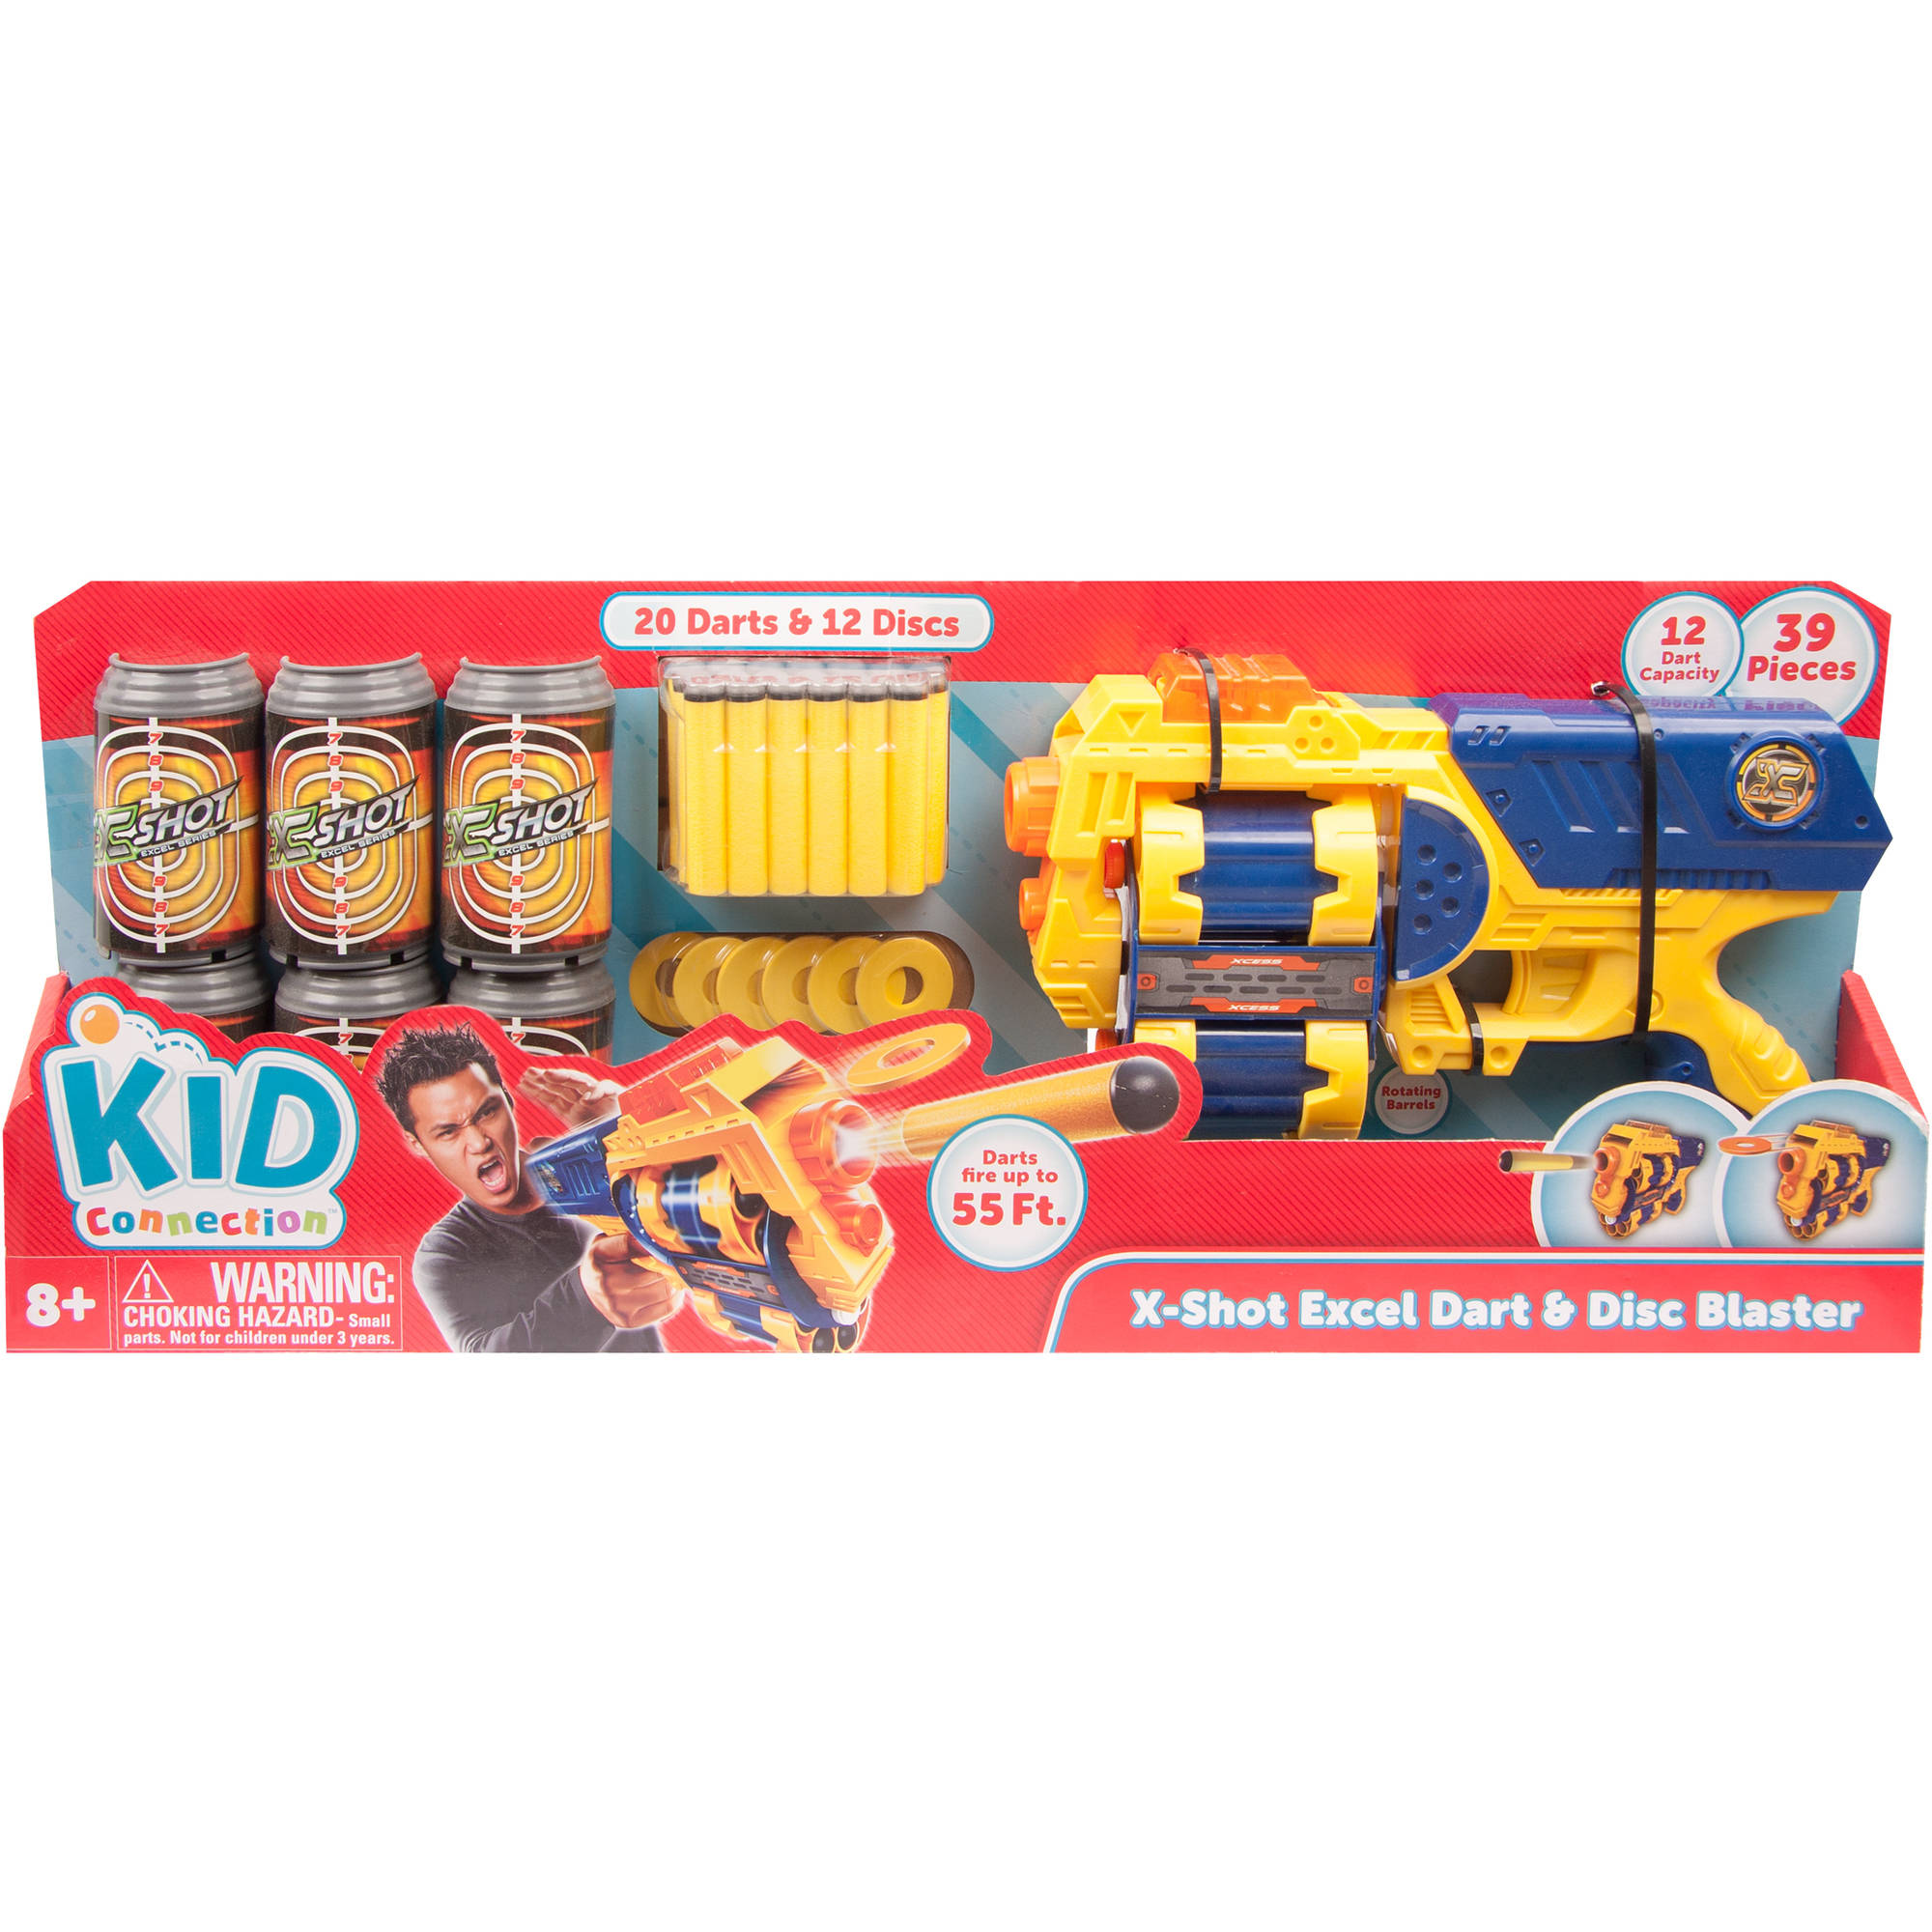 Kid Connection Xcess Dart & Disc Blaster (39-piece combo)